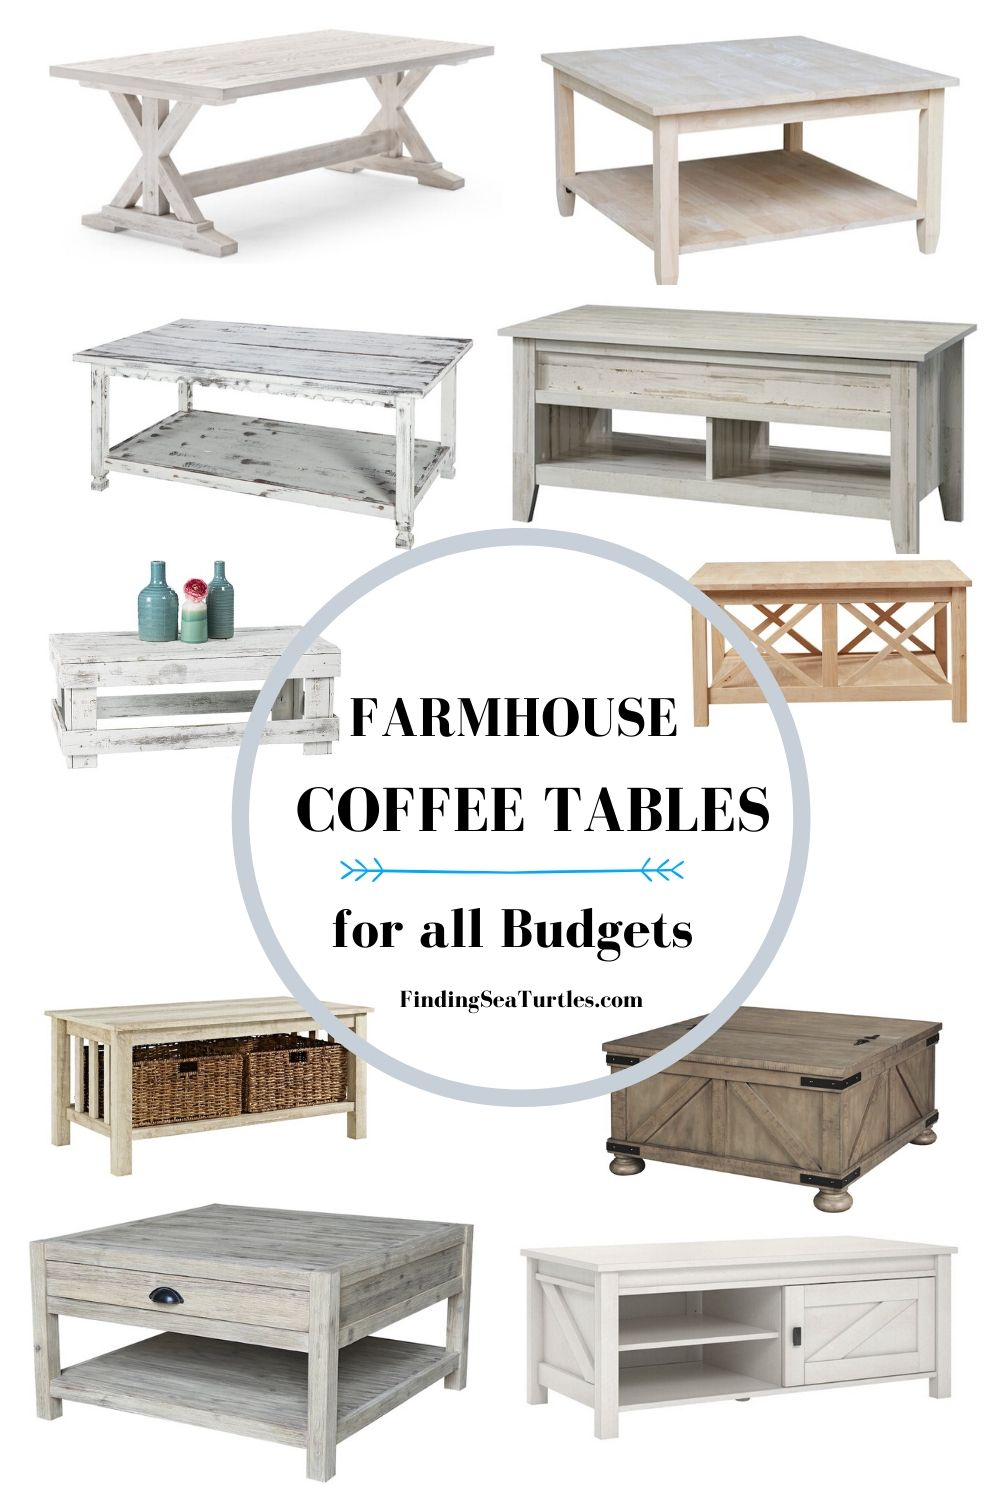 FARMHOUSE COFFEE TABLES for all Budgets #Farmhouse #FarmhouseDecor #Decor #CountryStyleDecor #CoffeeTables #CountryDecor #AffordableFarmhouse